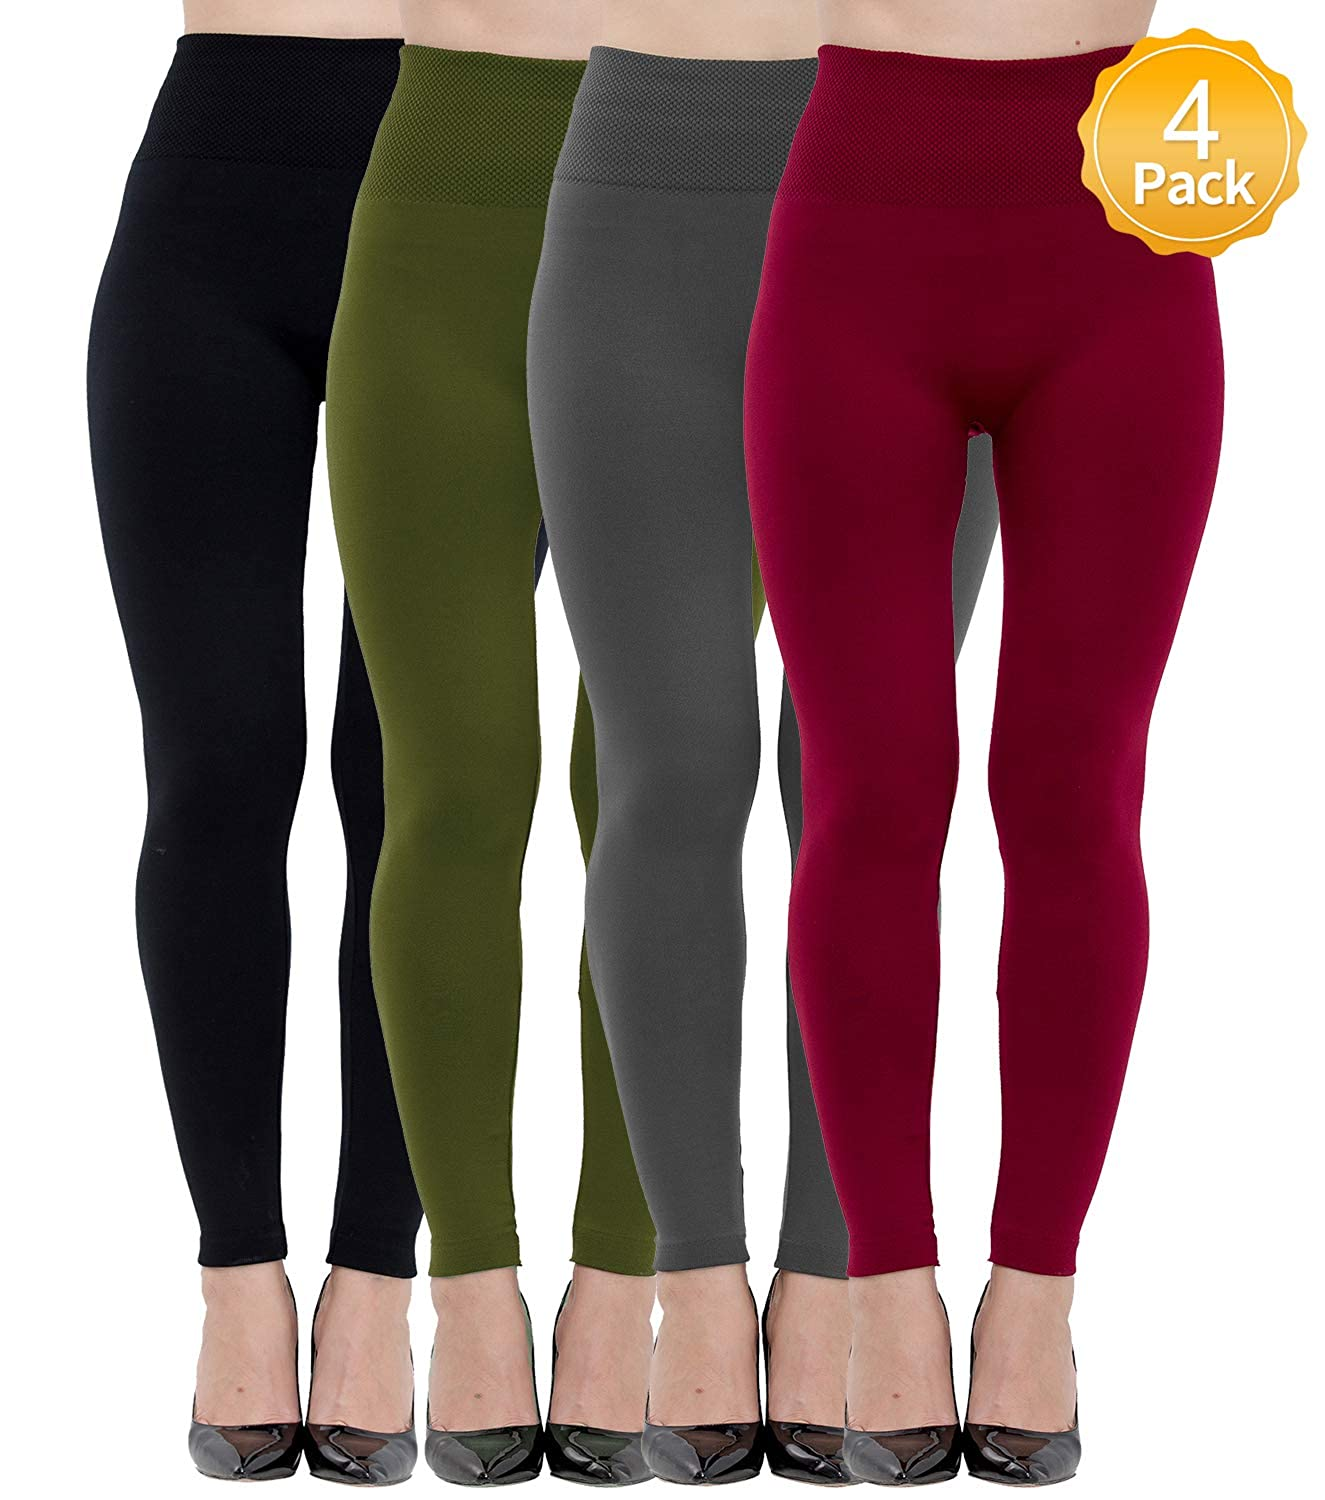 ca5ecb1ee938fa Diravo 4 Pack Women's Fleece Lined Leggings Soft High Waist Slimming Winter  Warm Leggings at Amazon Women's Clothing store: